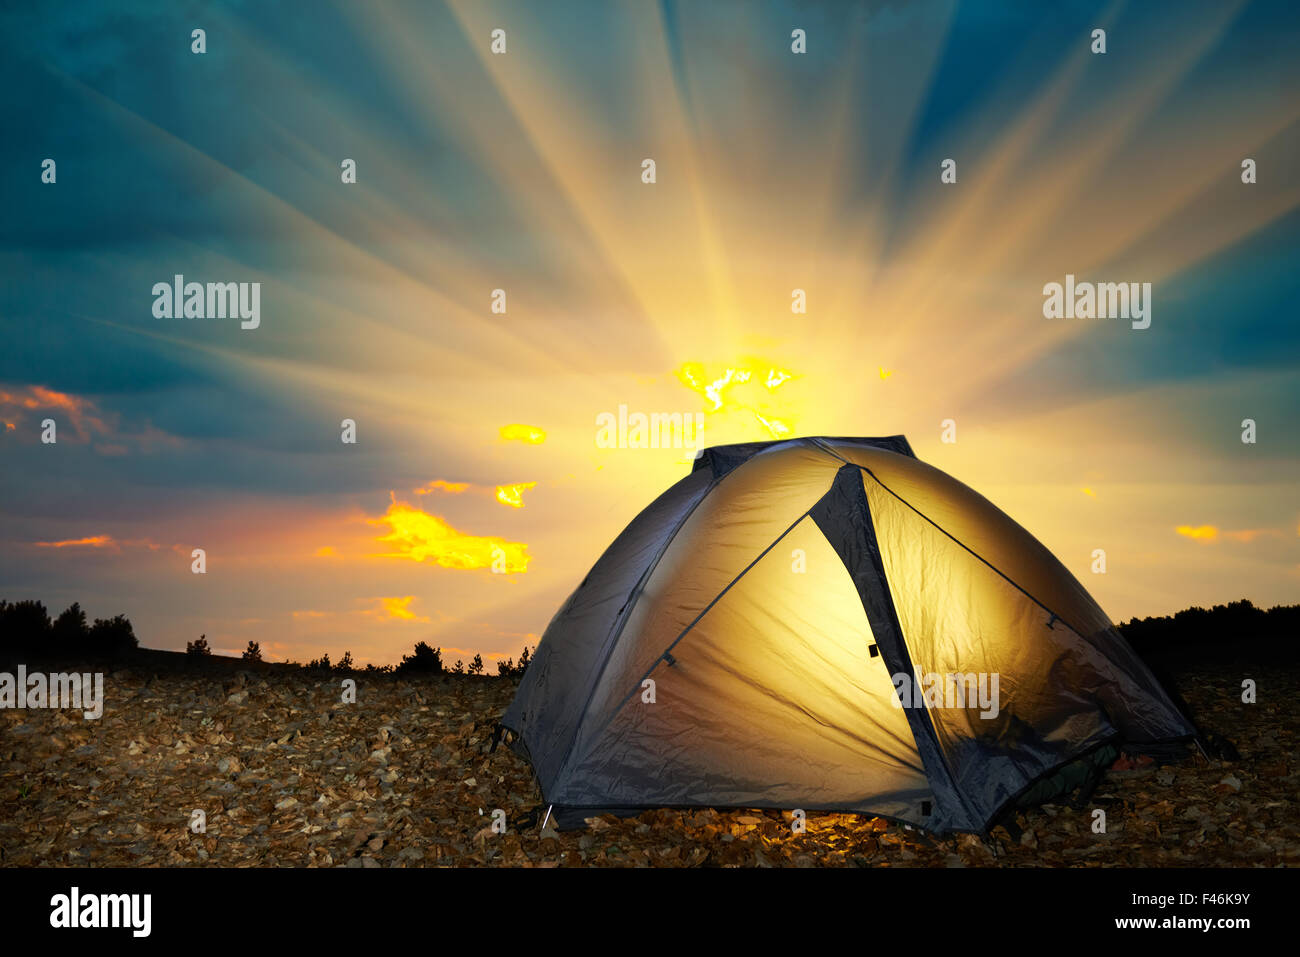 Illuminated yellow camping tent - Stock Image